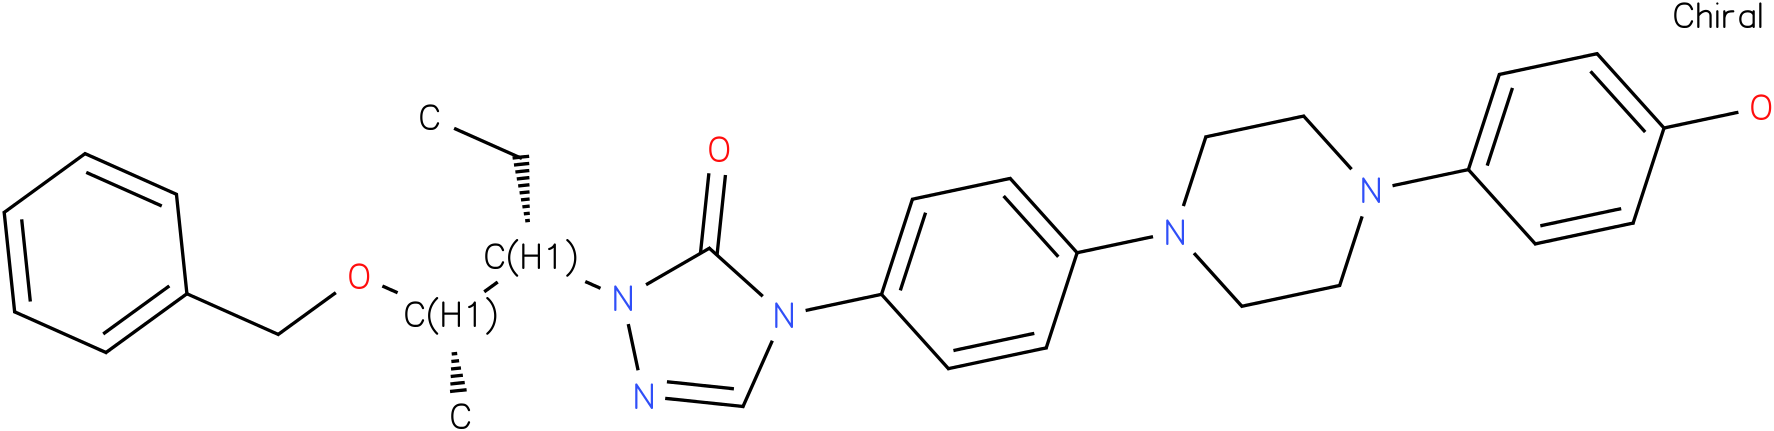 2-[(1S,2S)-1-ethyl-2-bezyloxypropyl]-2,4-dihydro-4-[4-[4-(4-hydroxyphenyl)-1-piperazinyl]phenyl]- 3H-1,2,4-Triazol-3-one